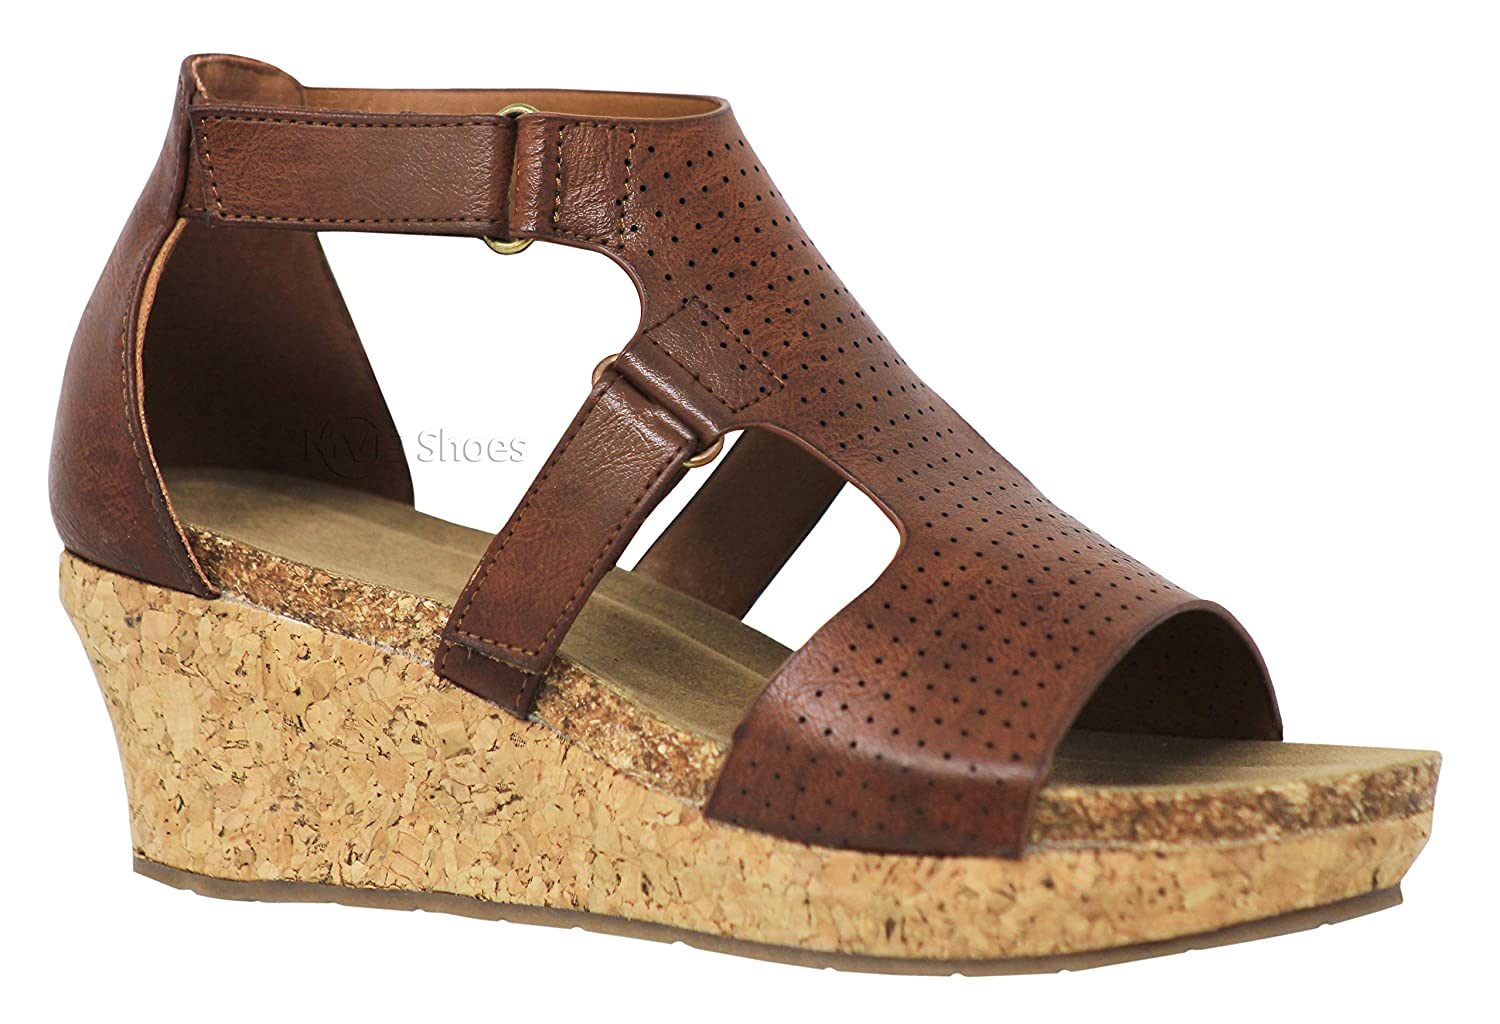 Whiskey5c MVE shoes Women Cut Out Open Toe Wedges-Comfy Sandals